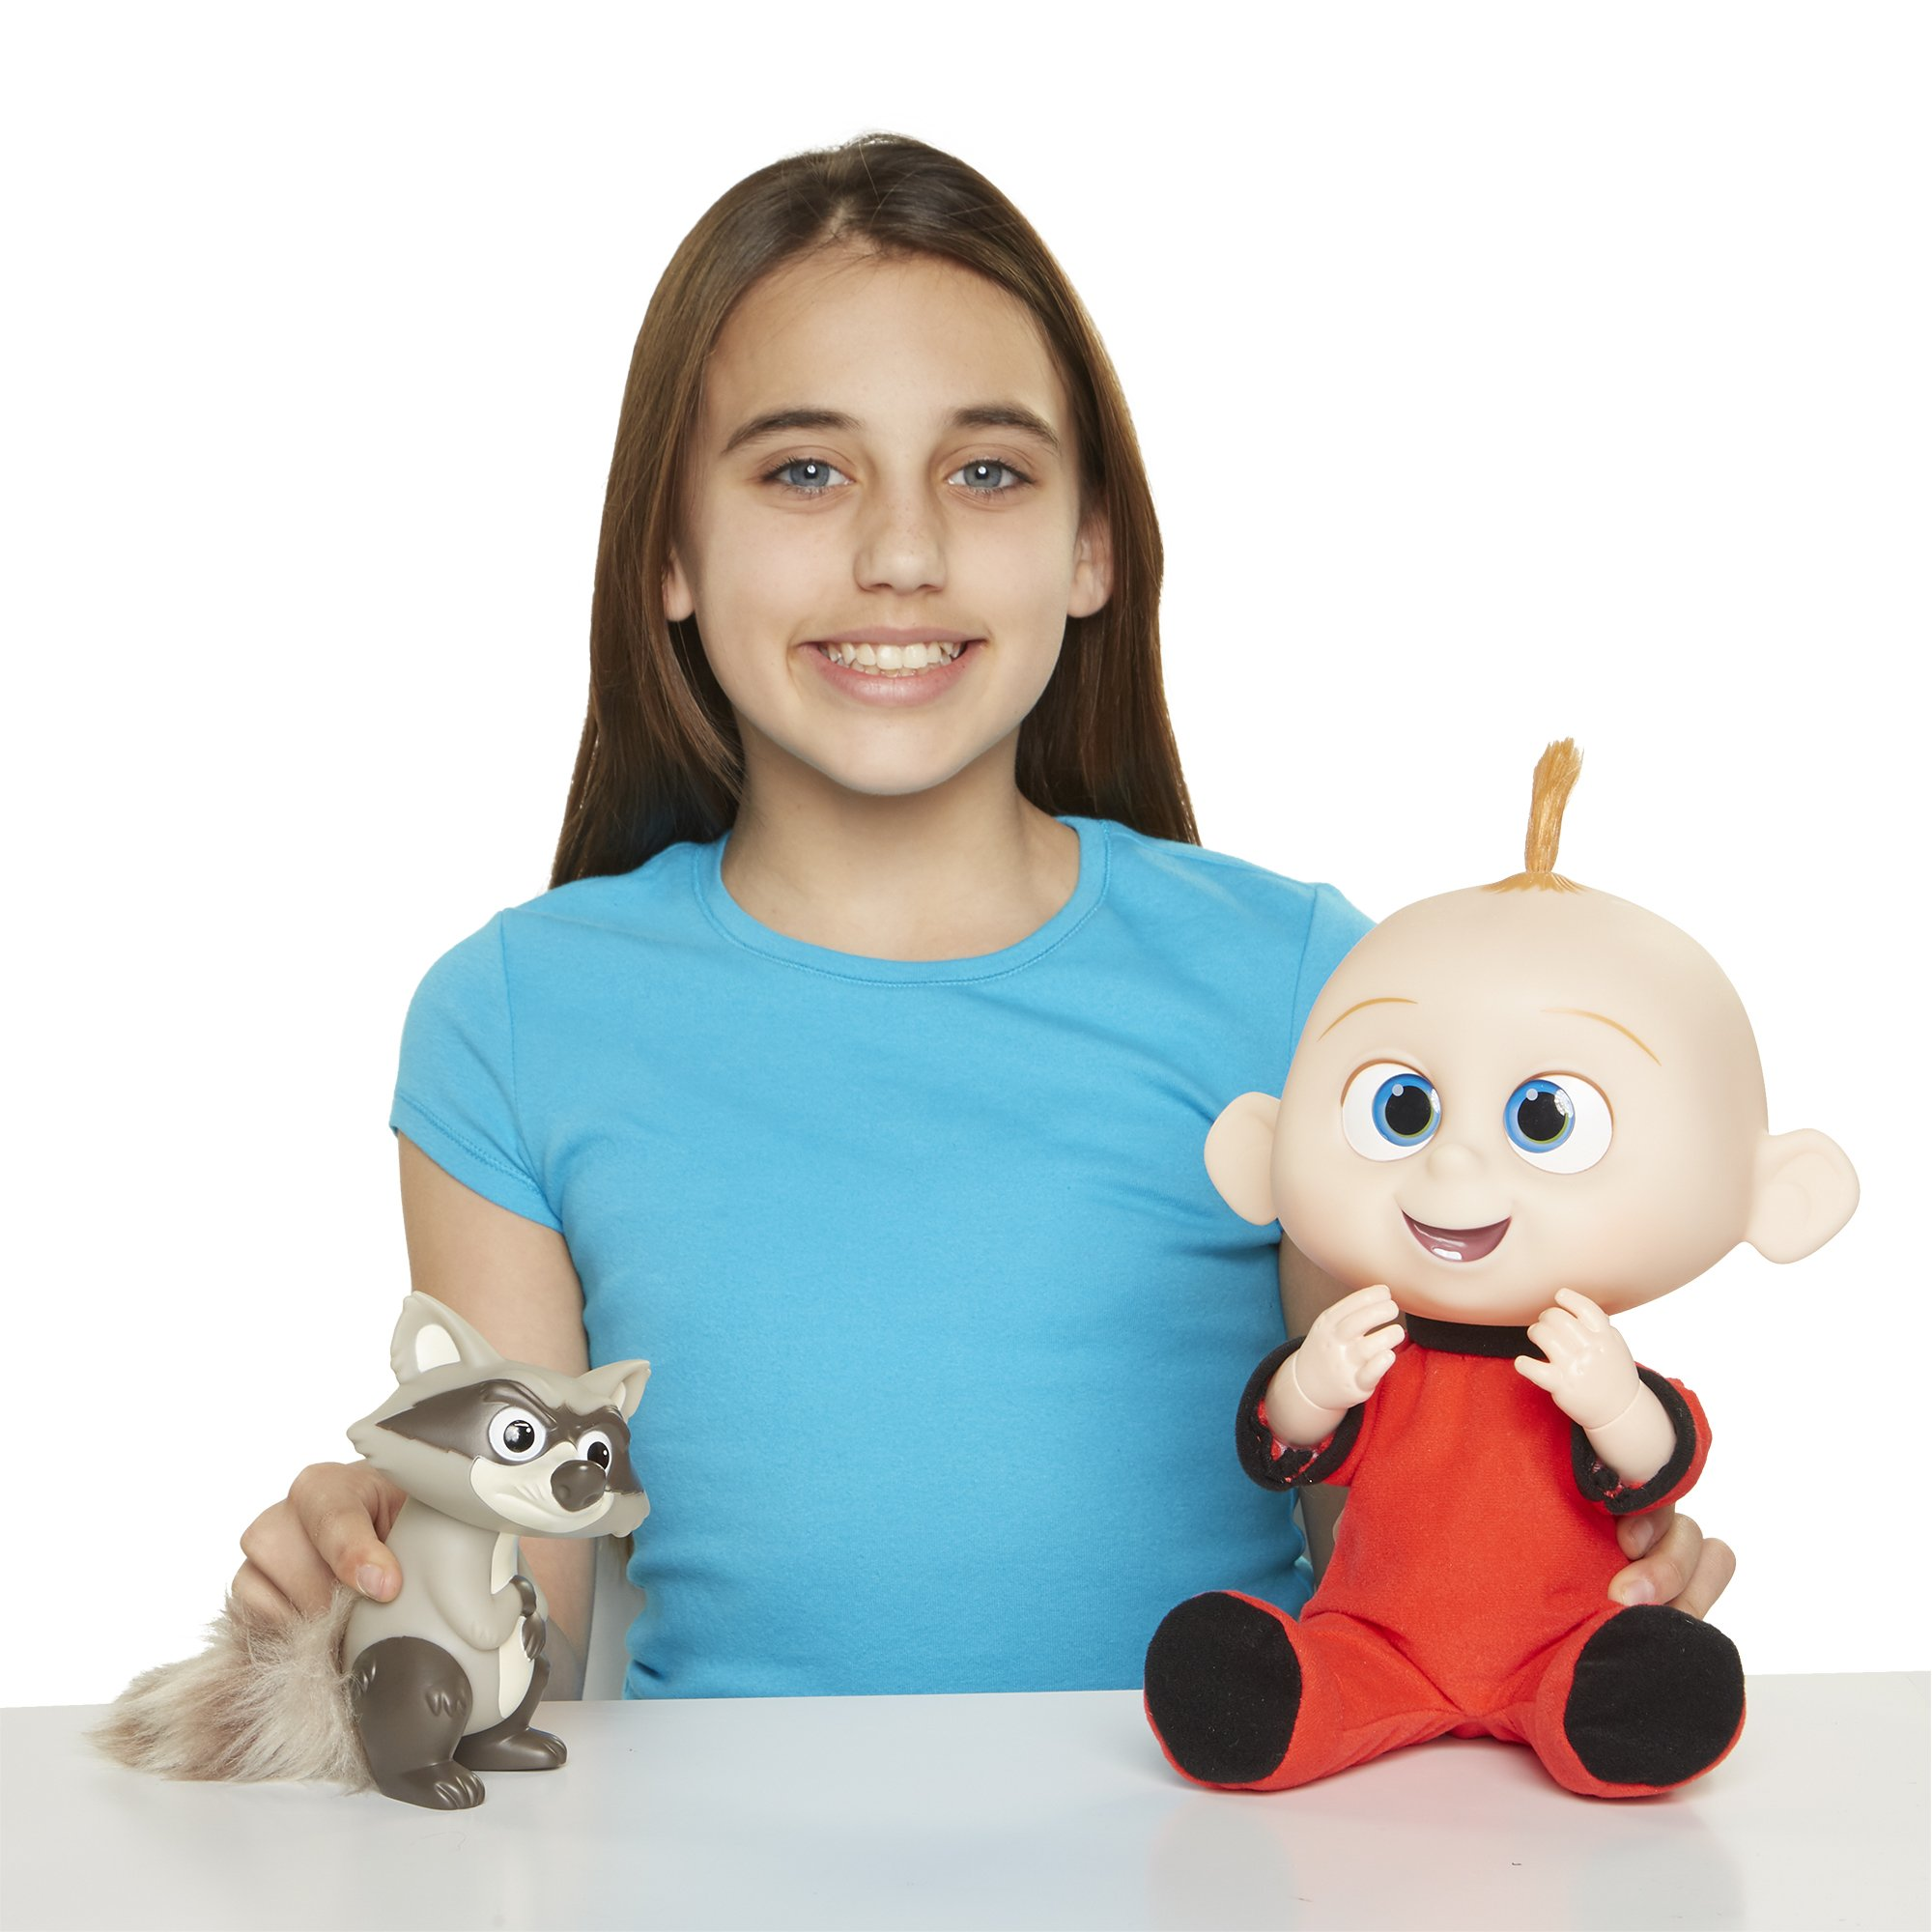 The Incredibles 2 Jack-Jack Plush-Figure Features Lights & Sounds and comes with Raccoon Toy by The Incredibles 2 (Image #11)